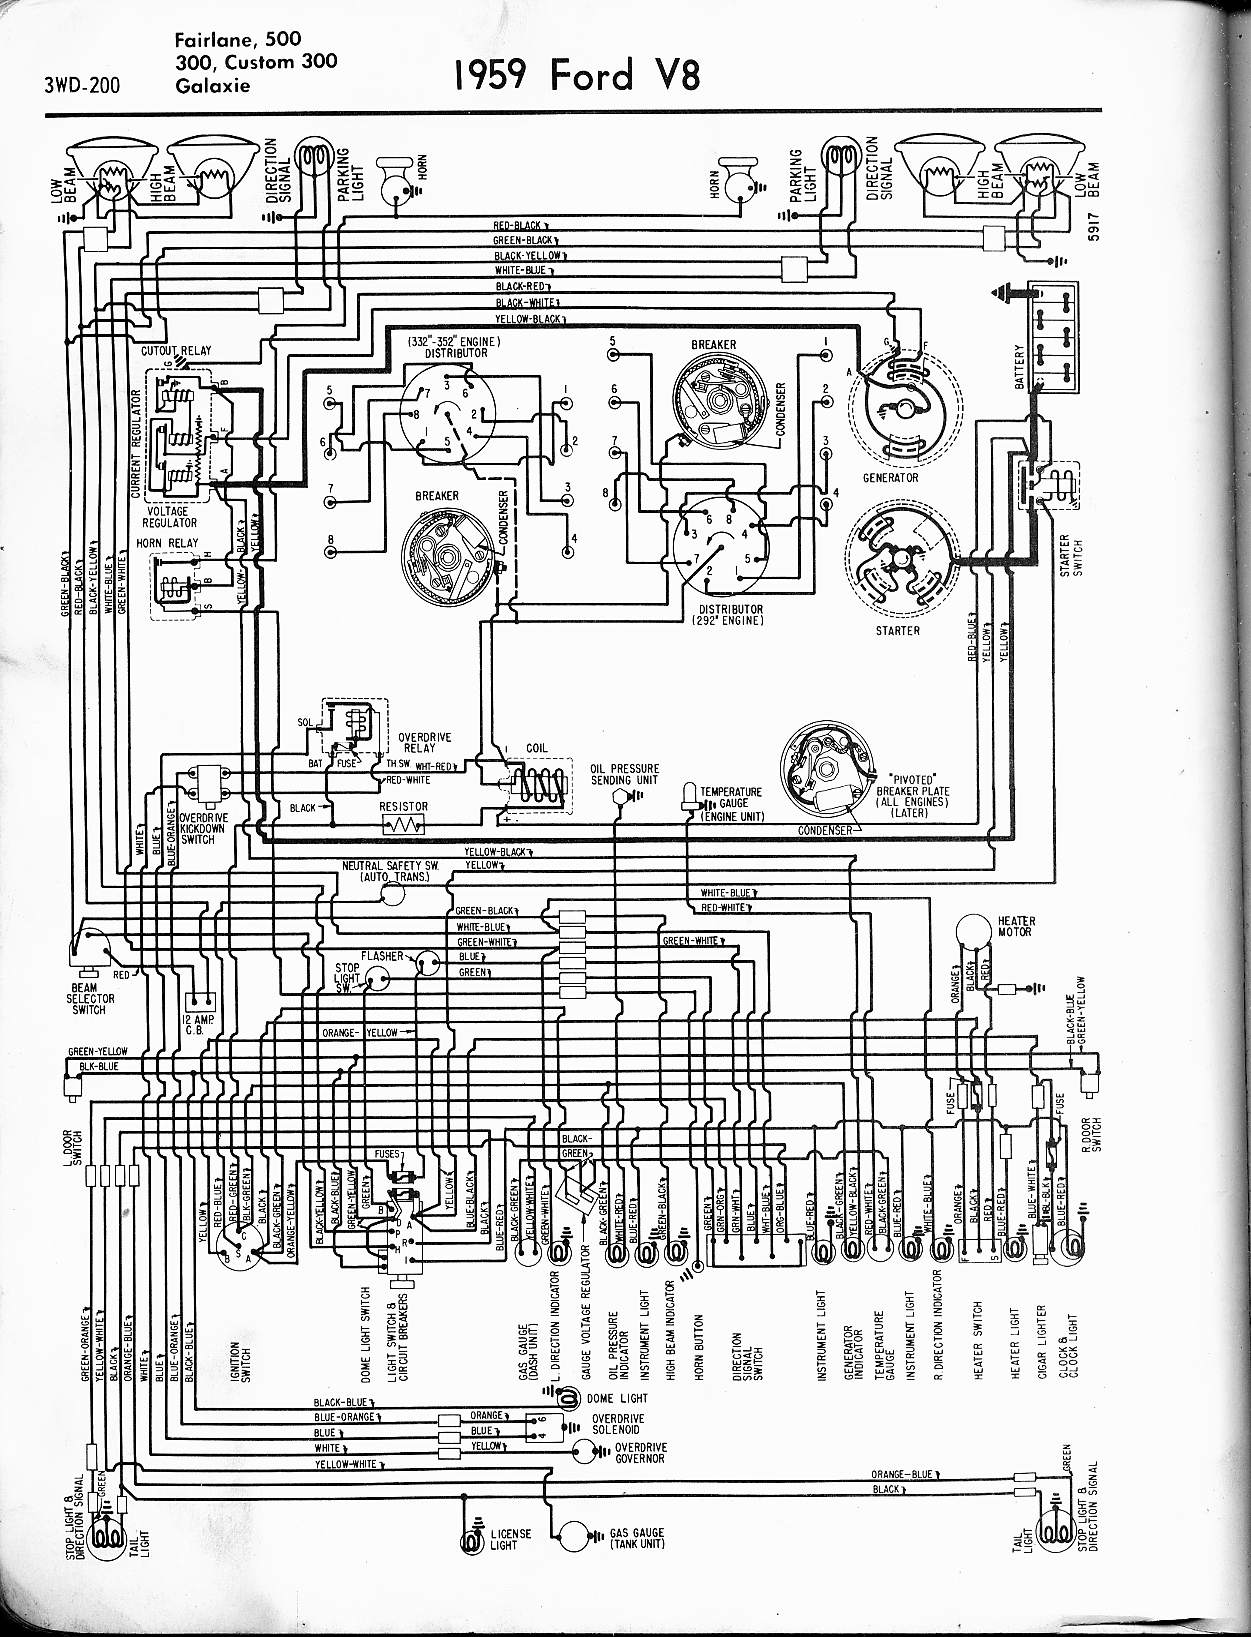 Ford Galaxie Cluster Wiring Diagram Will Be A Thing 1966 Mustang 57 65 Diagrams Rh Oldcarmanualproject Com Ignition Switch Ranger